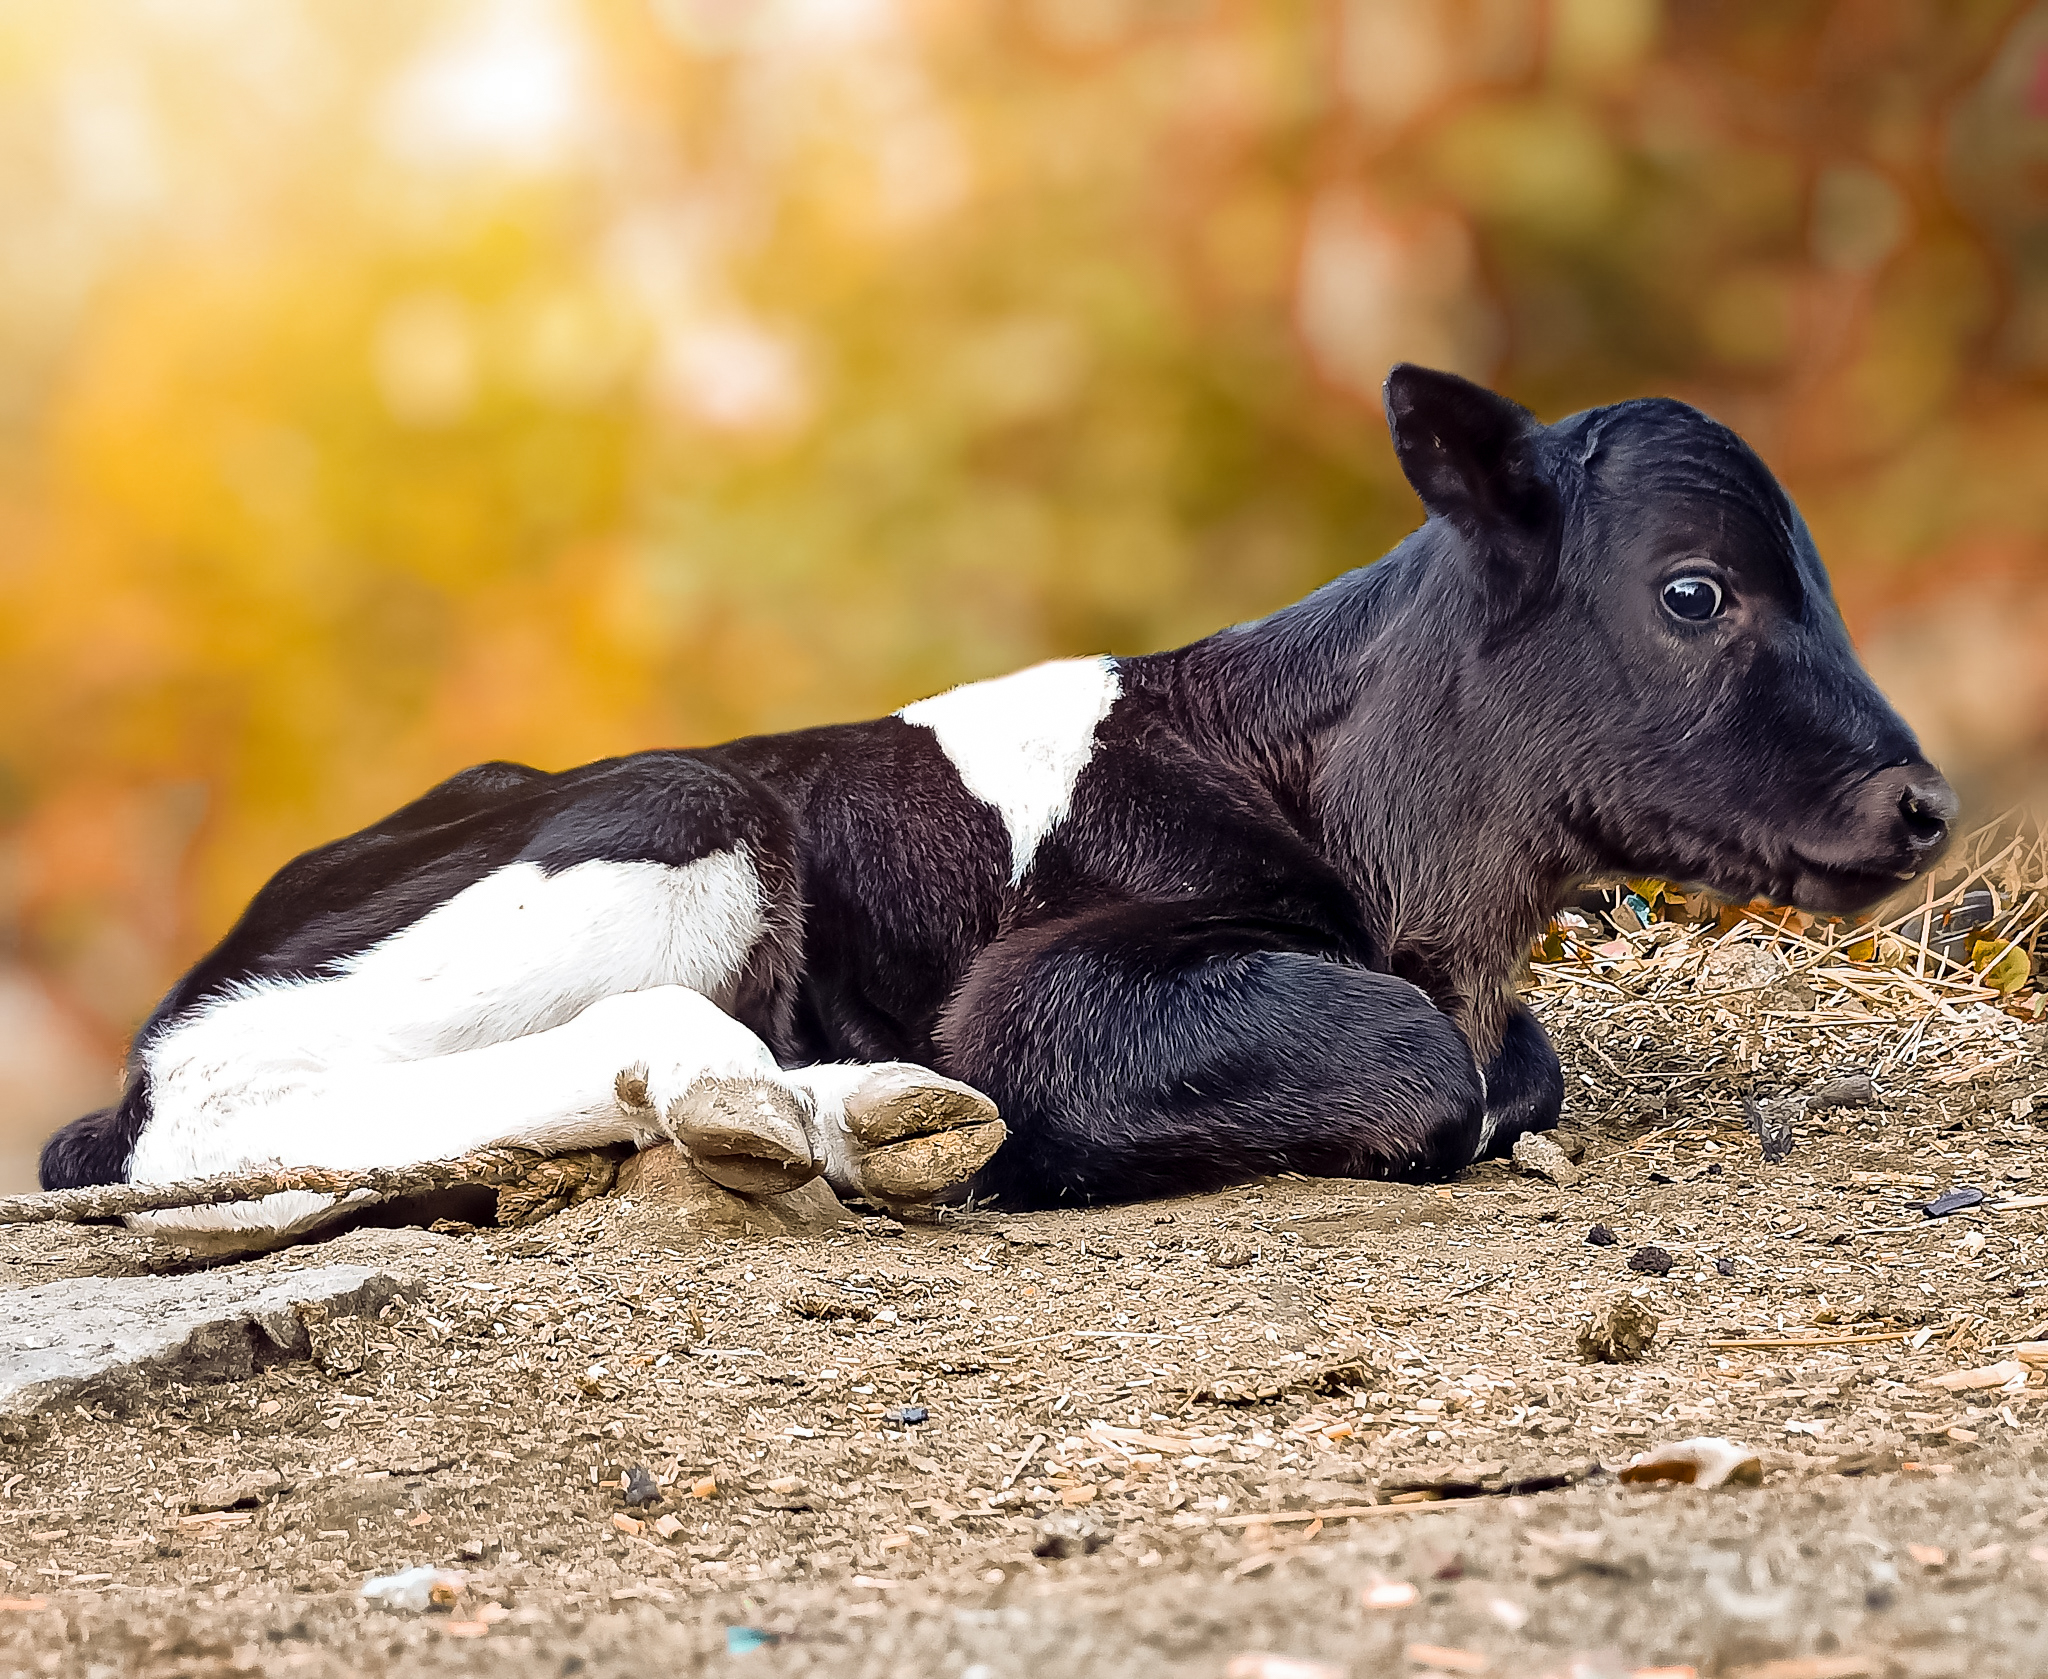 Baby calf on the ground